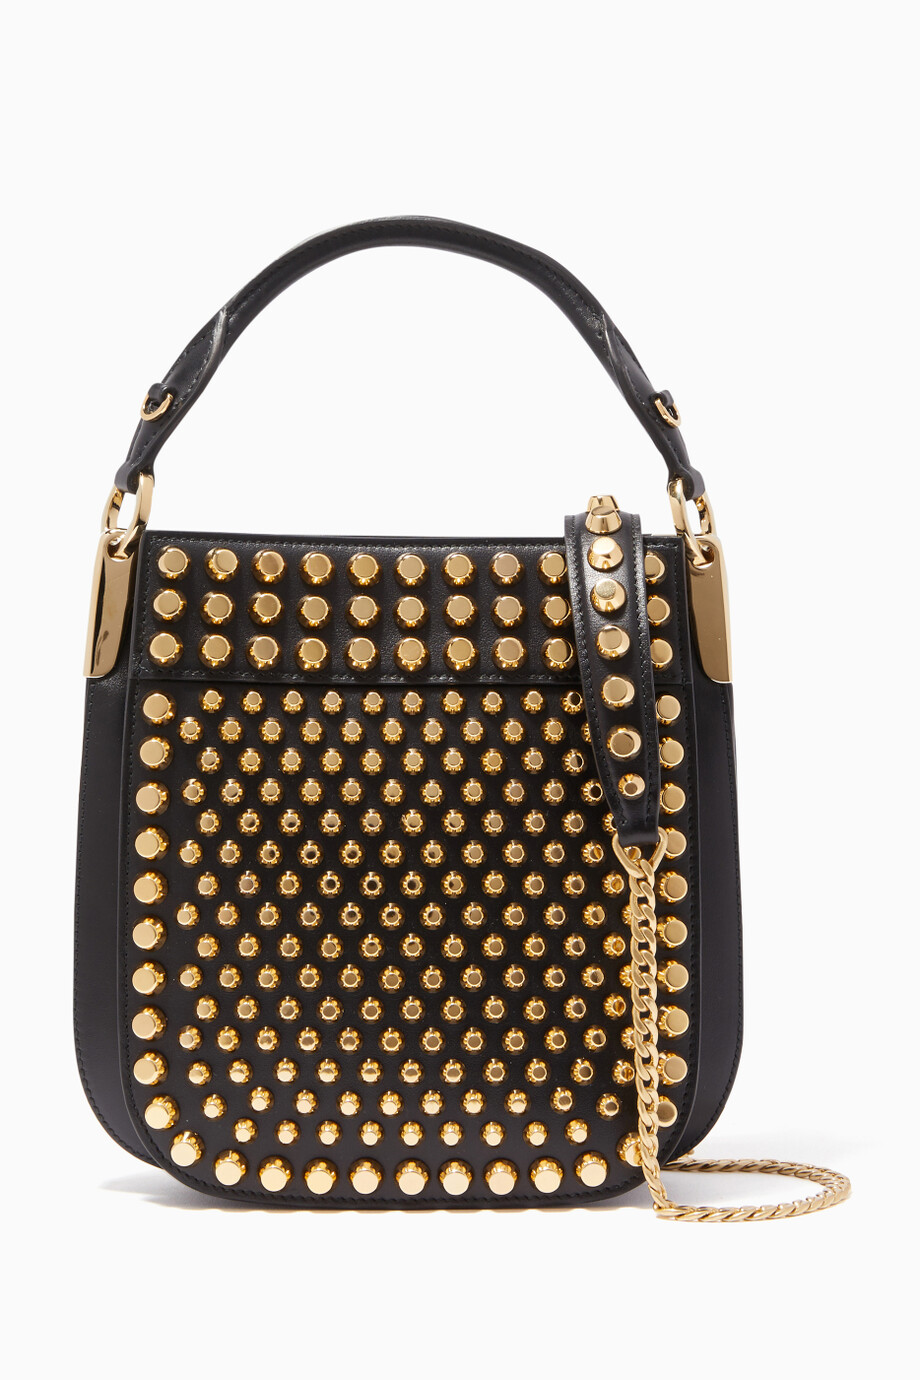 5531dafa26ad Shop Prada Black Studded Margit Bag for Women